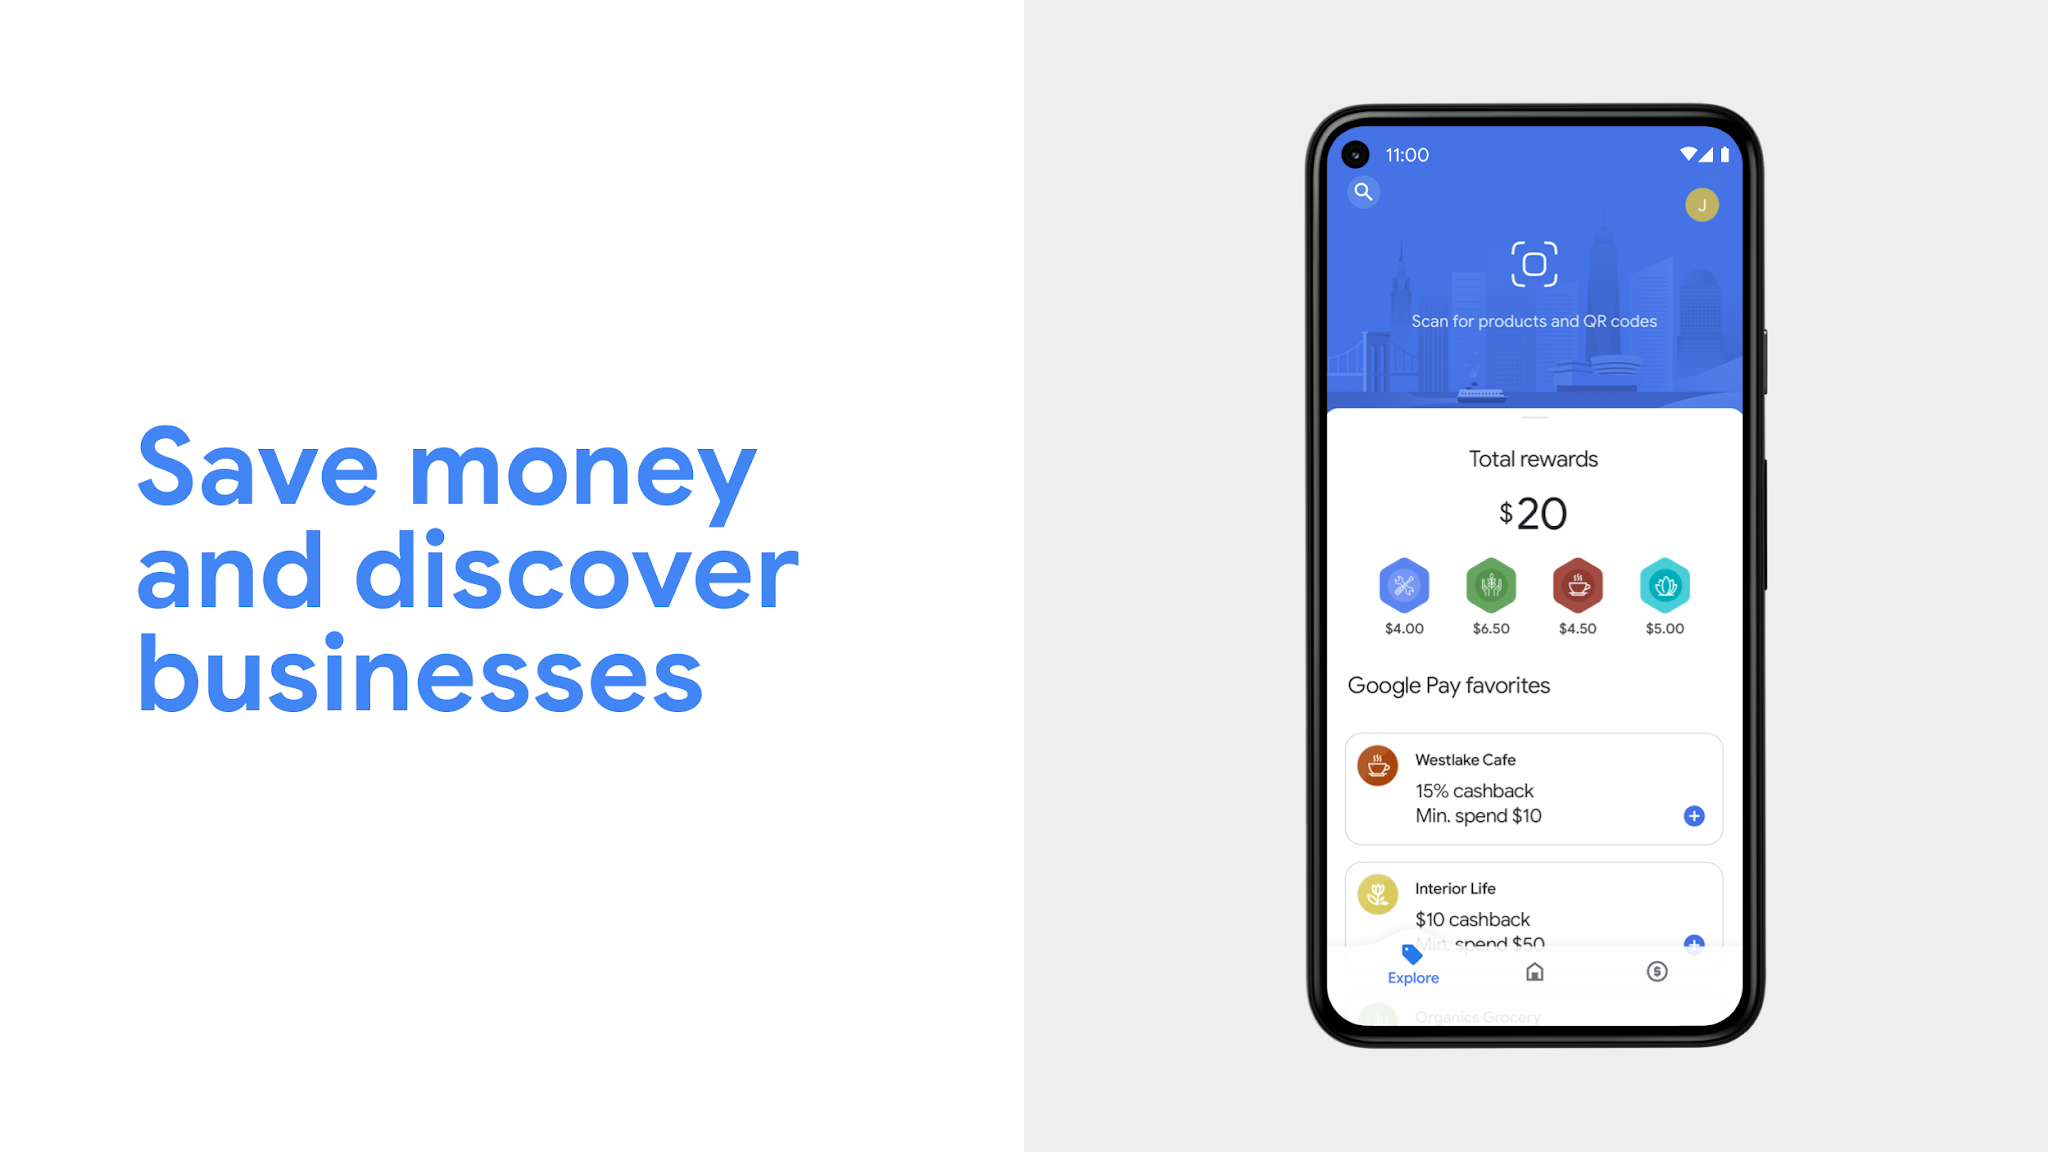 Save money and discover businesses